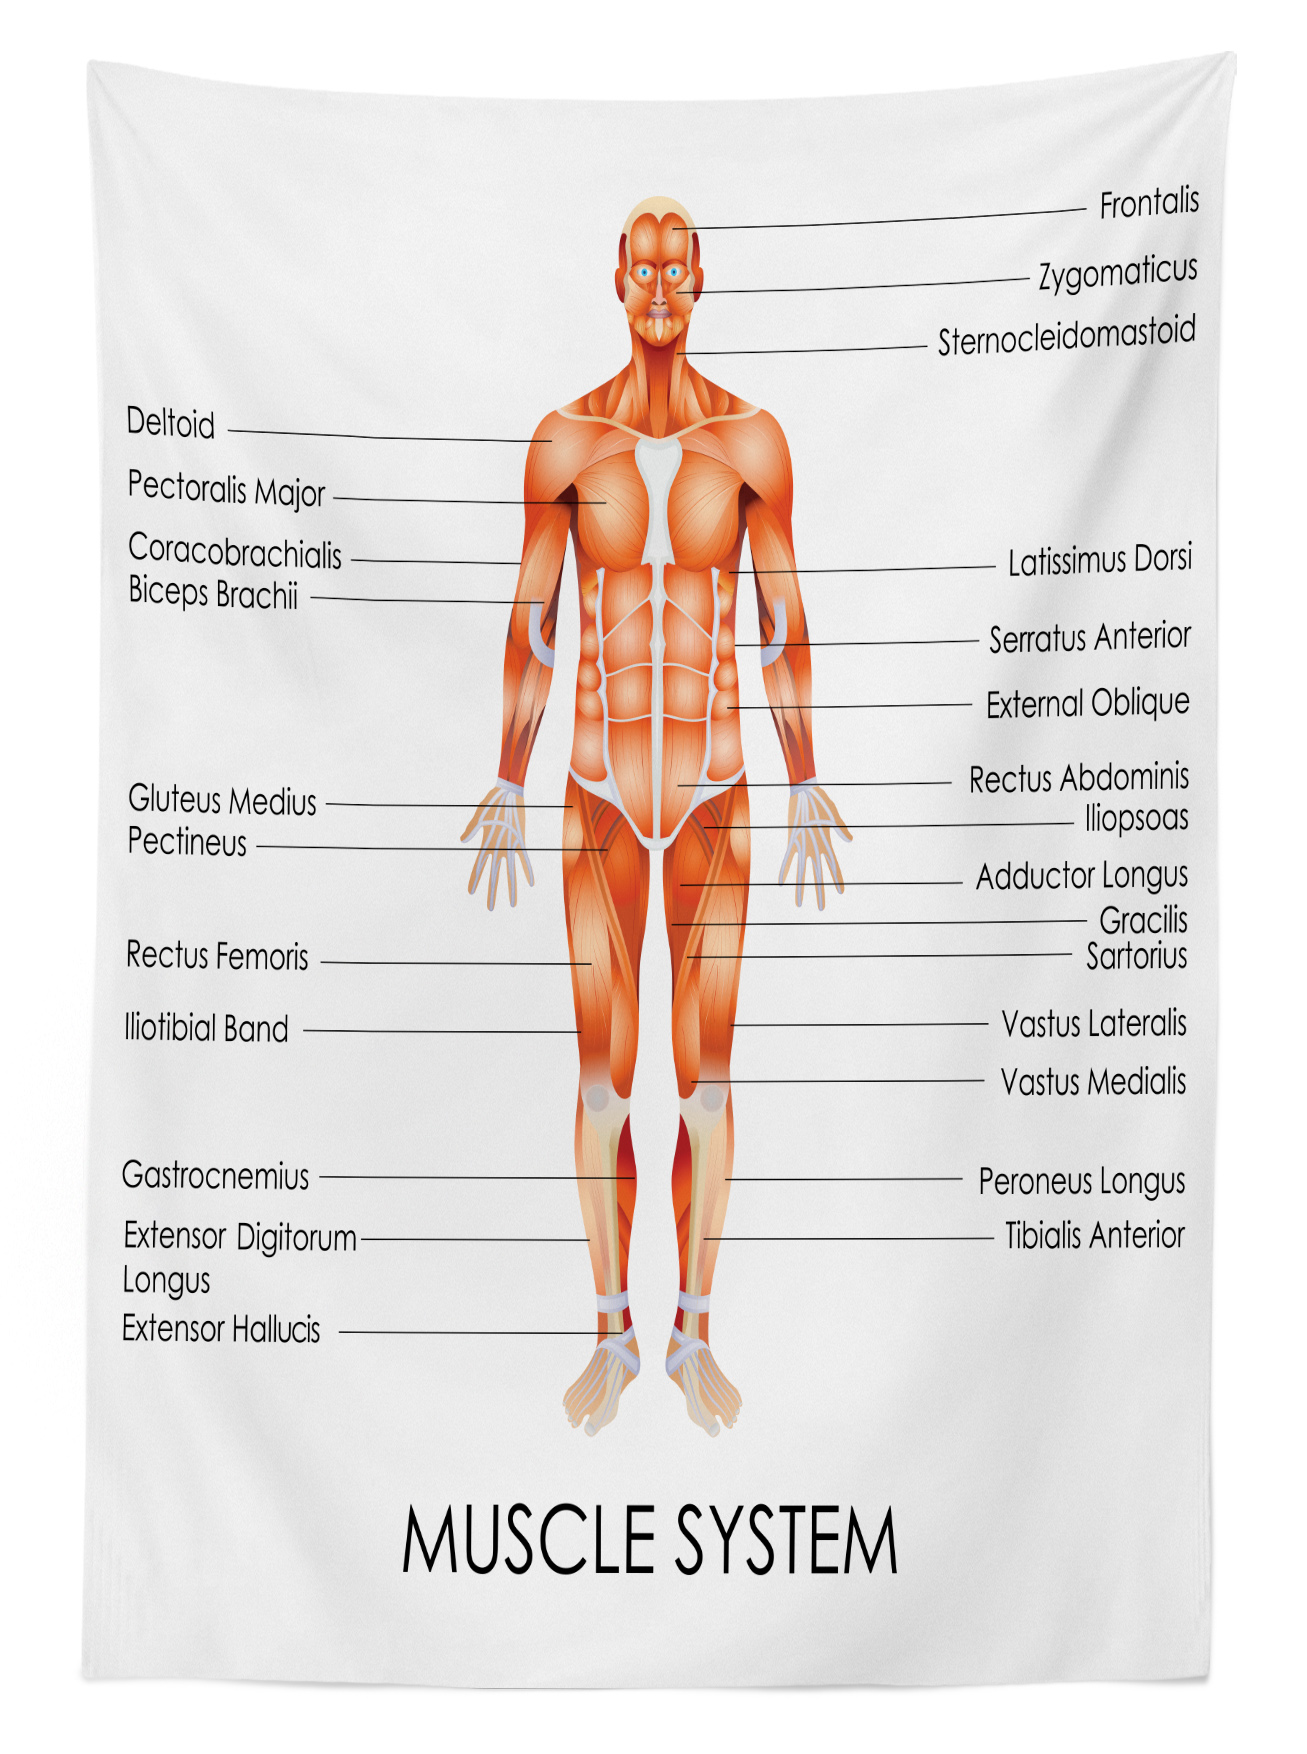 hight resolution of human anatomy outdoor tablecloth muscle system diagram of man body features biological elements medical heath image decorative washable fabric picnic